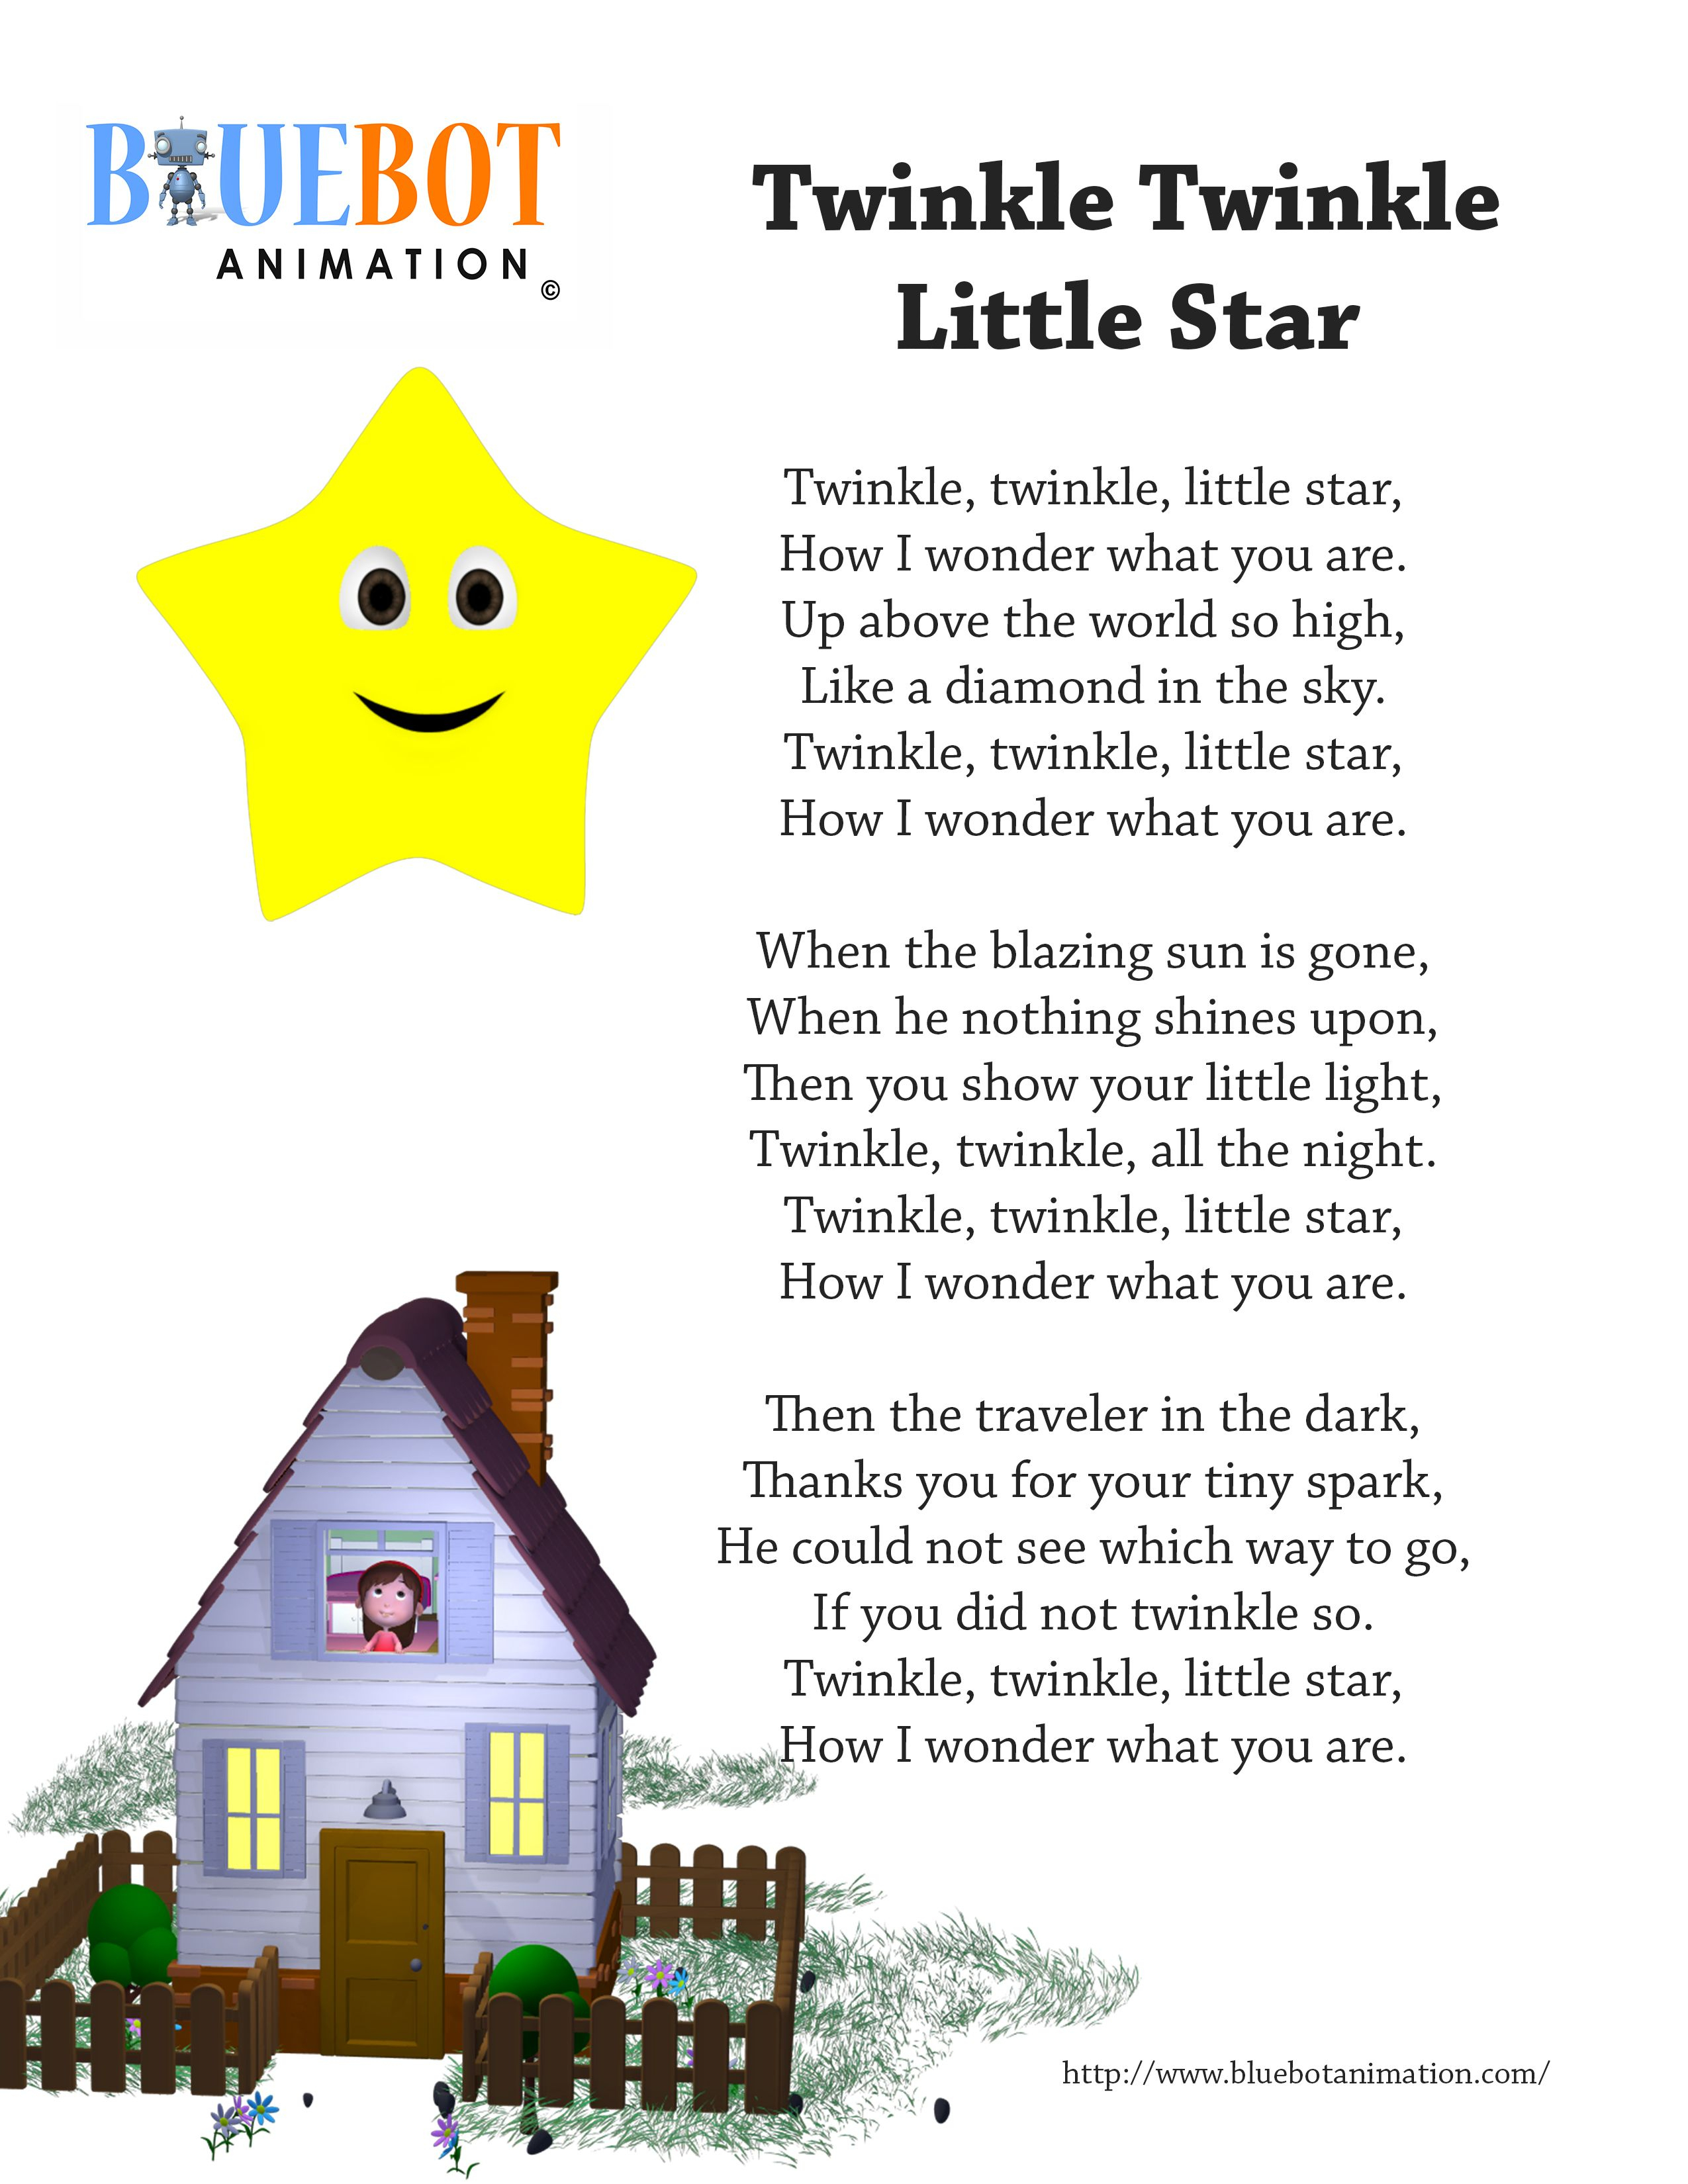 Twinkle Twinkle Little Star Nursery Rhyme Lyrics Free Printable - Free Printable Nursery Rhymes